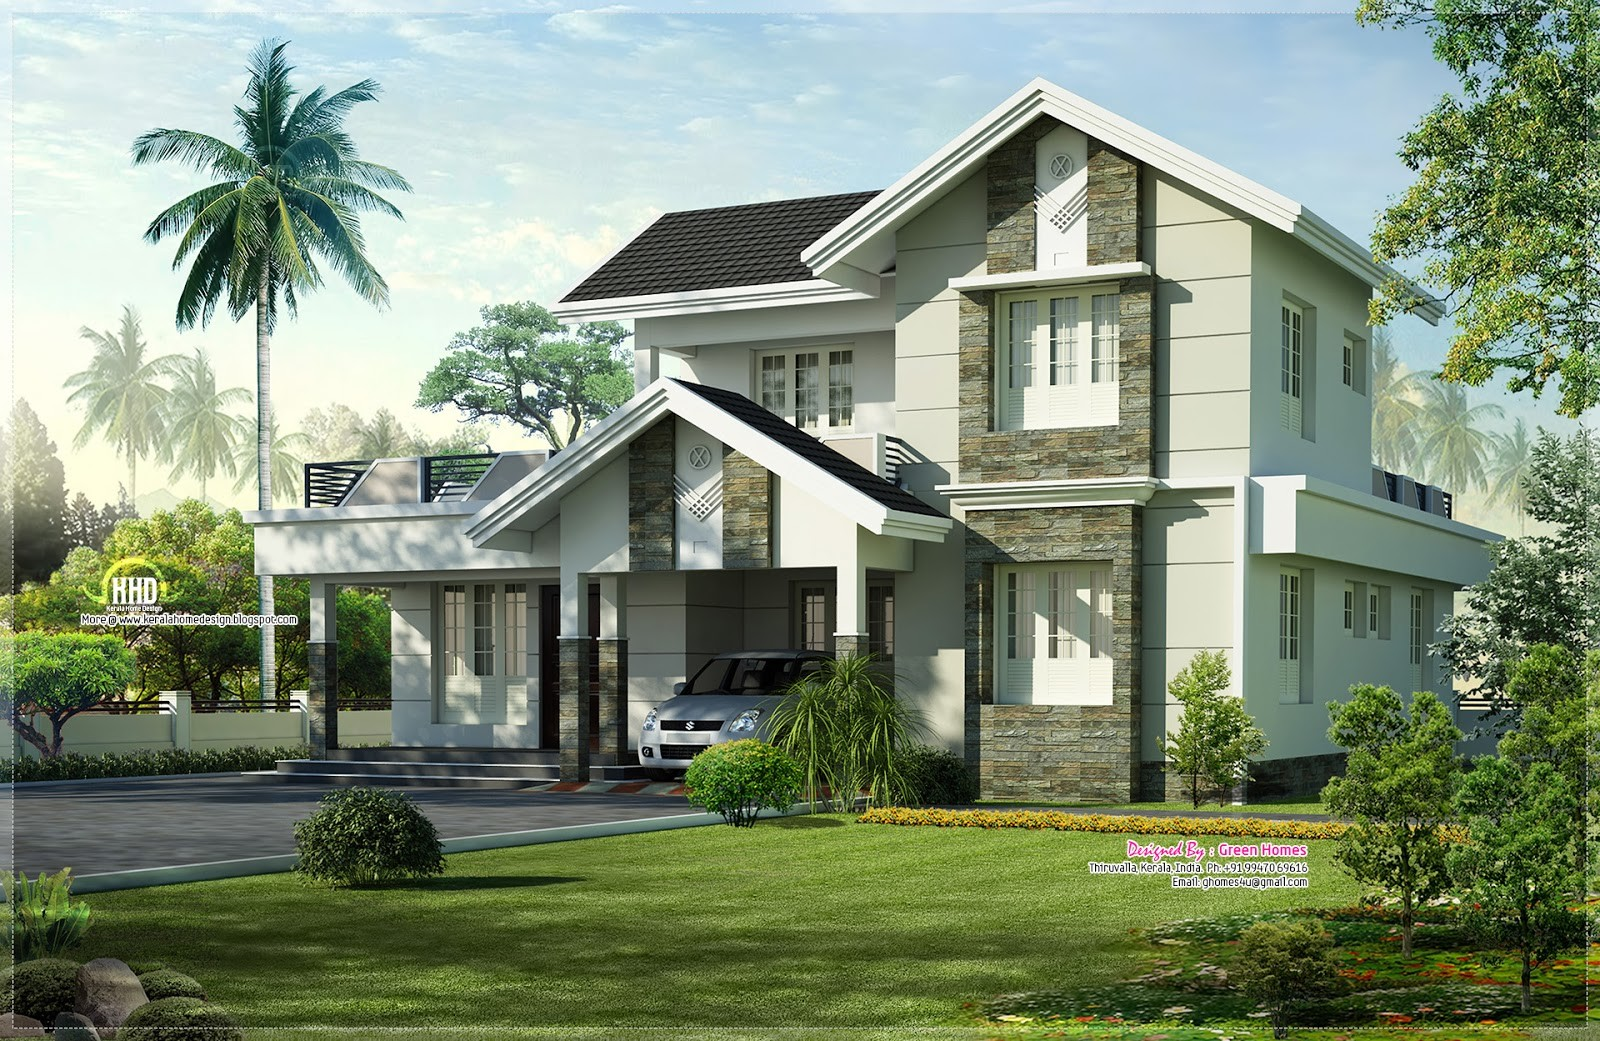 Feet Nice Home Exterior Design Kerala Plans